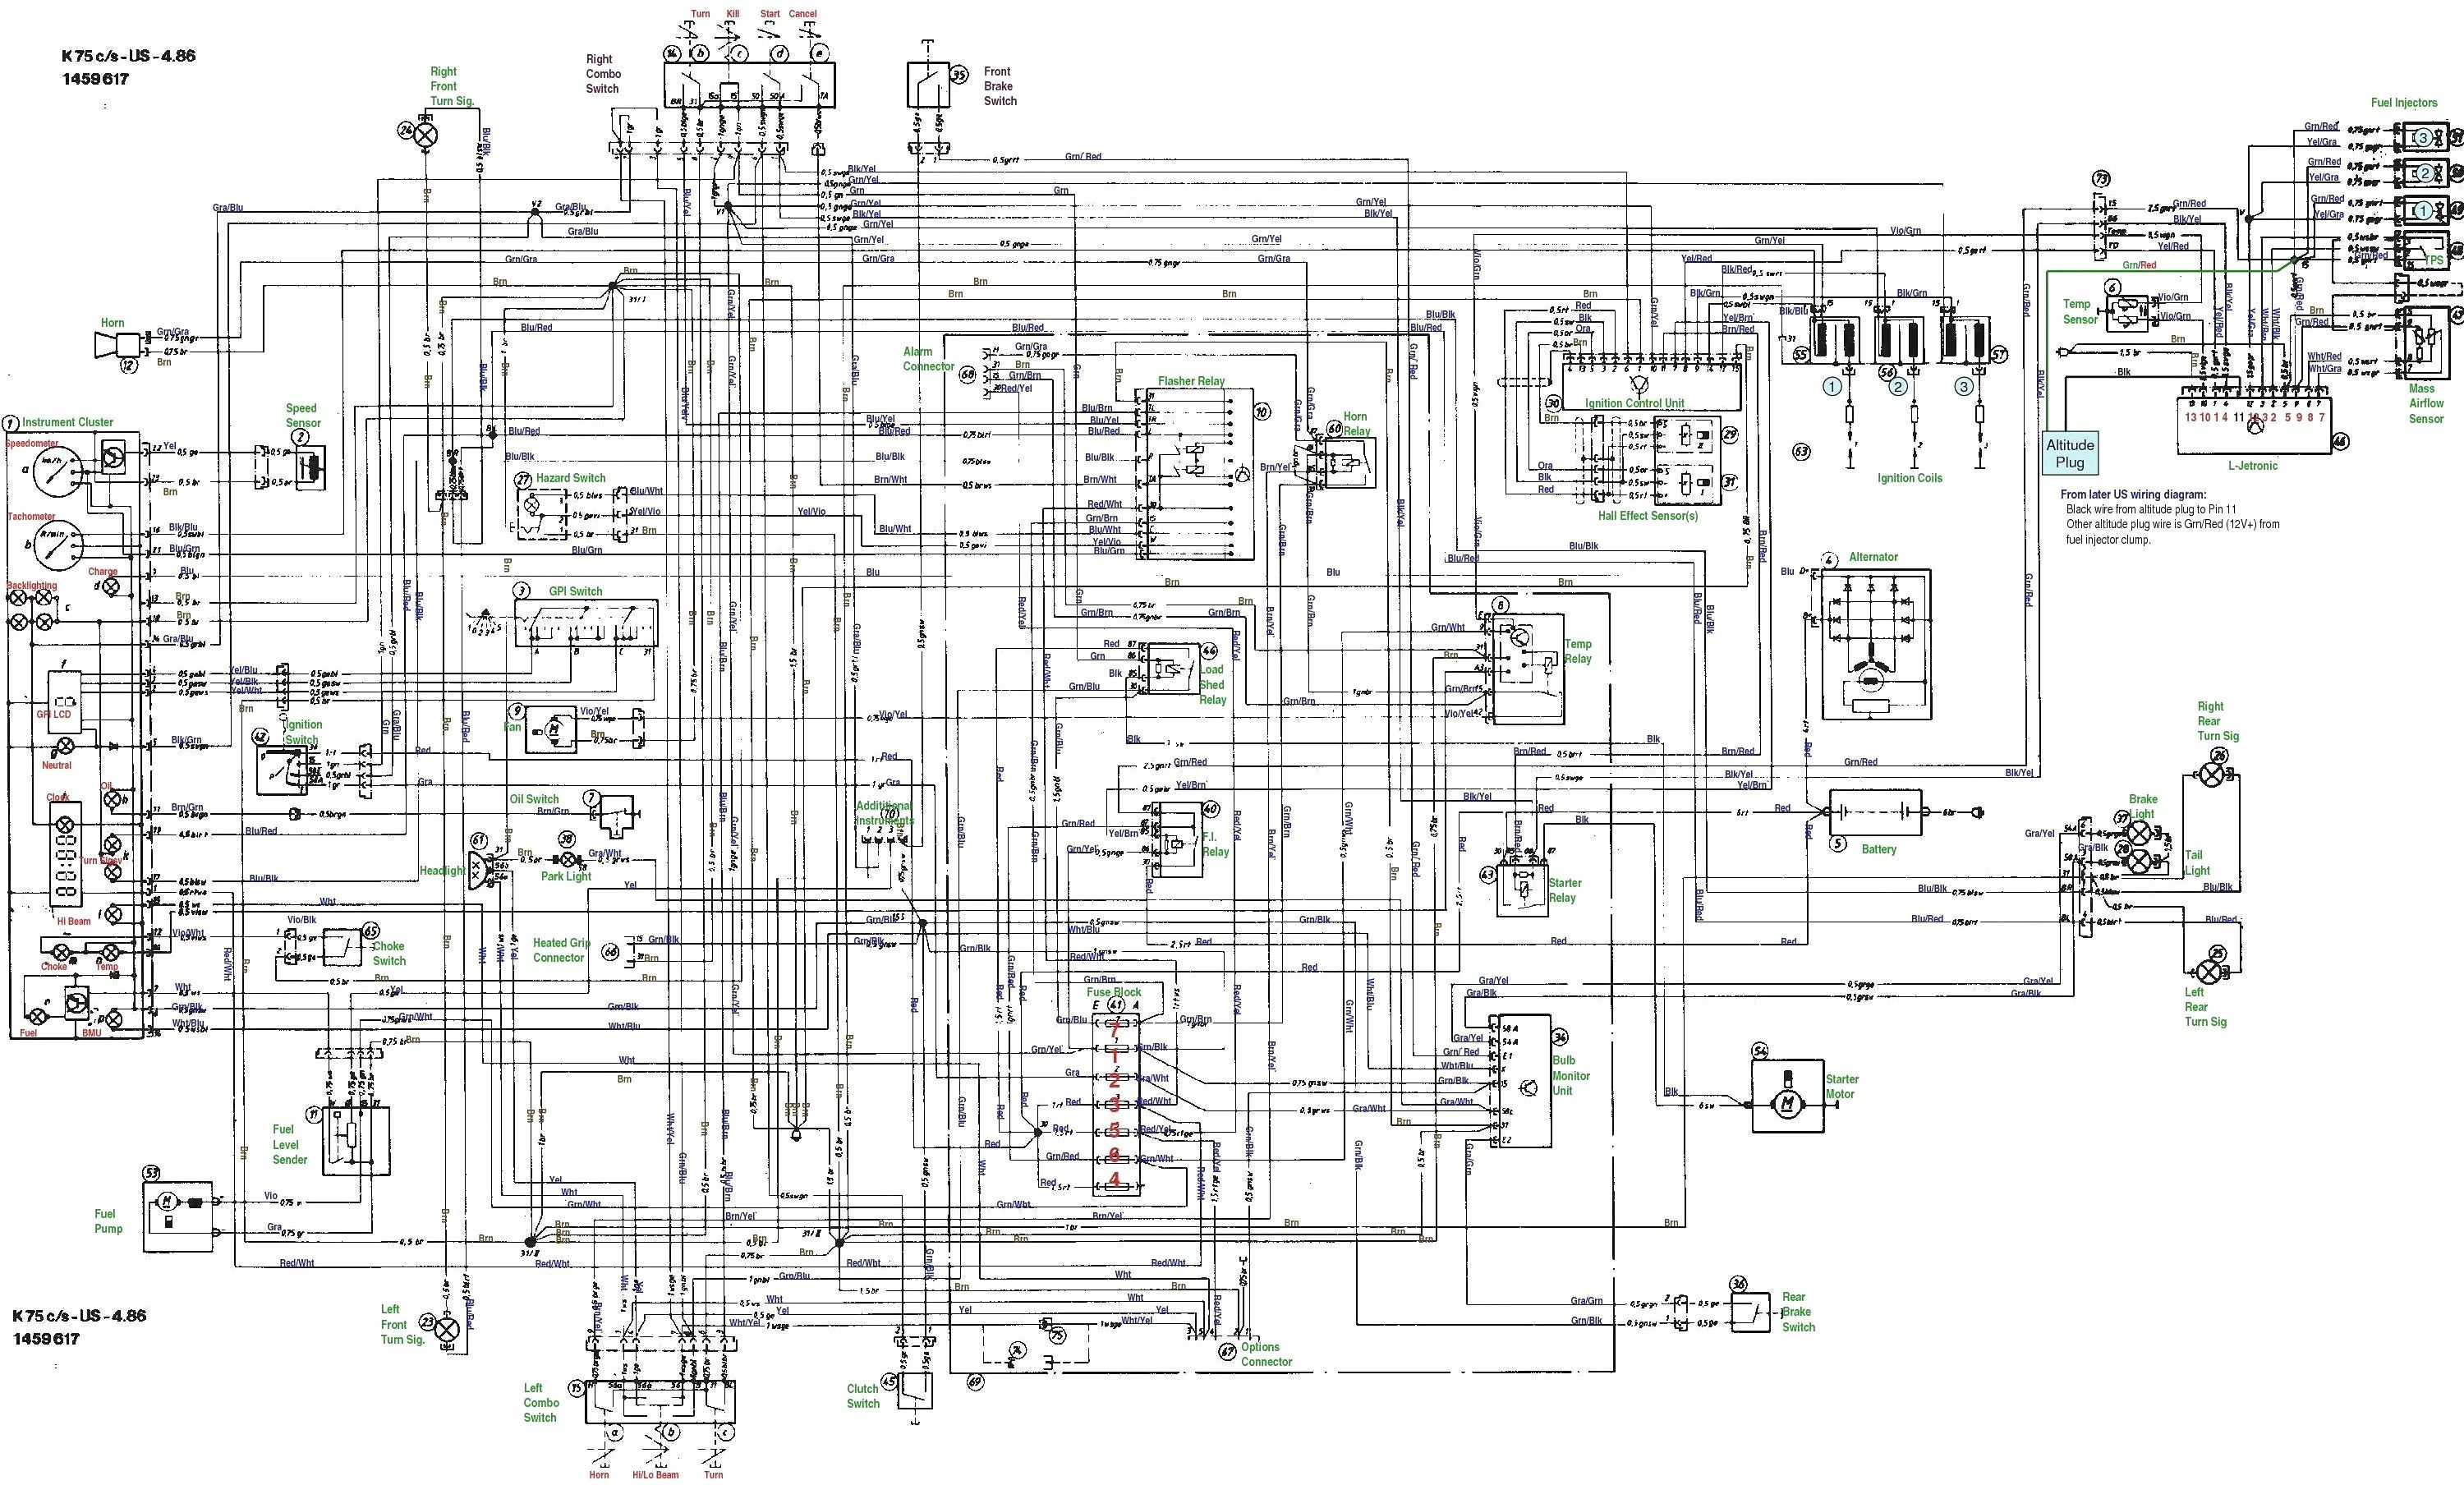 Unique Bmw E46 Engine Wiring Harness Diagram Diagram Diagramtemplate Diagramsample Bmw E46 Electrical Diagram Bmw